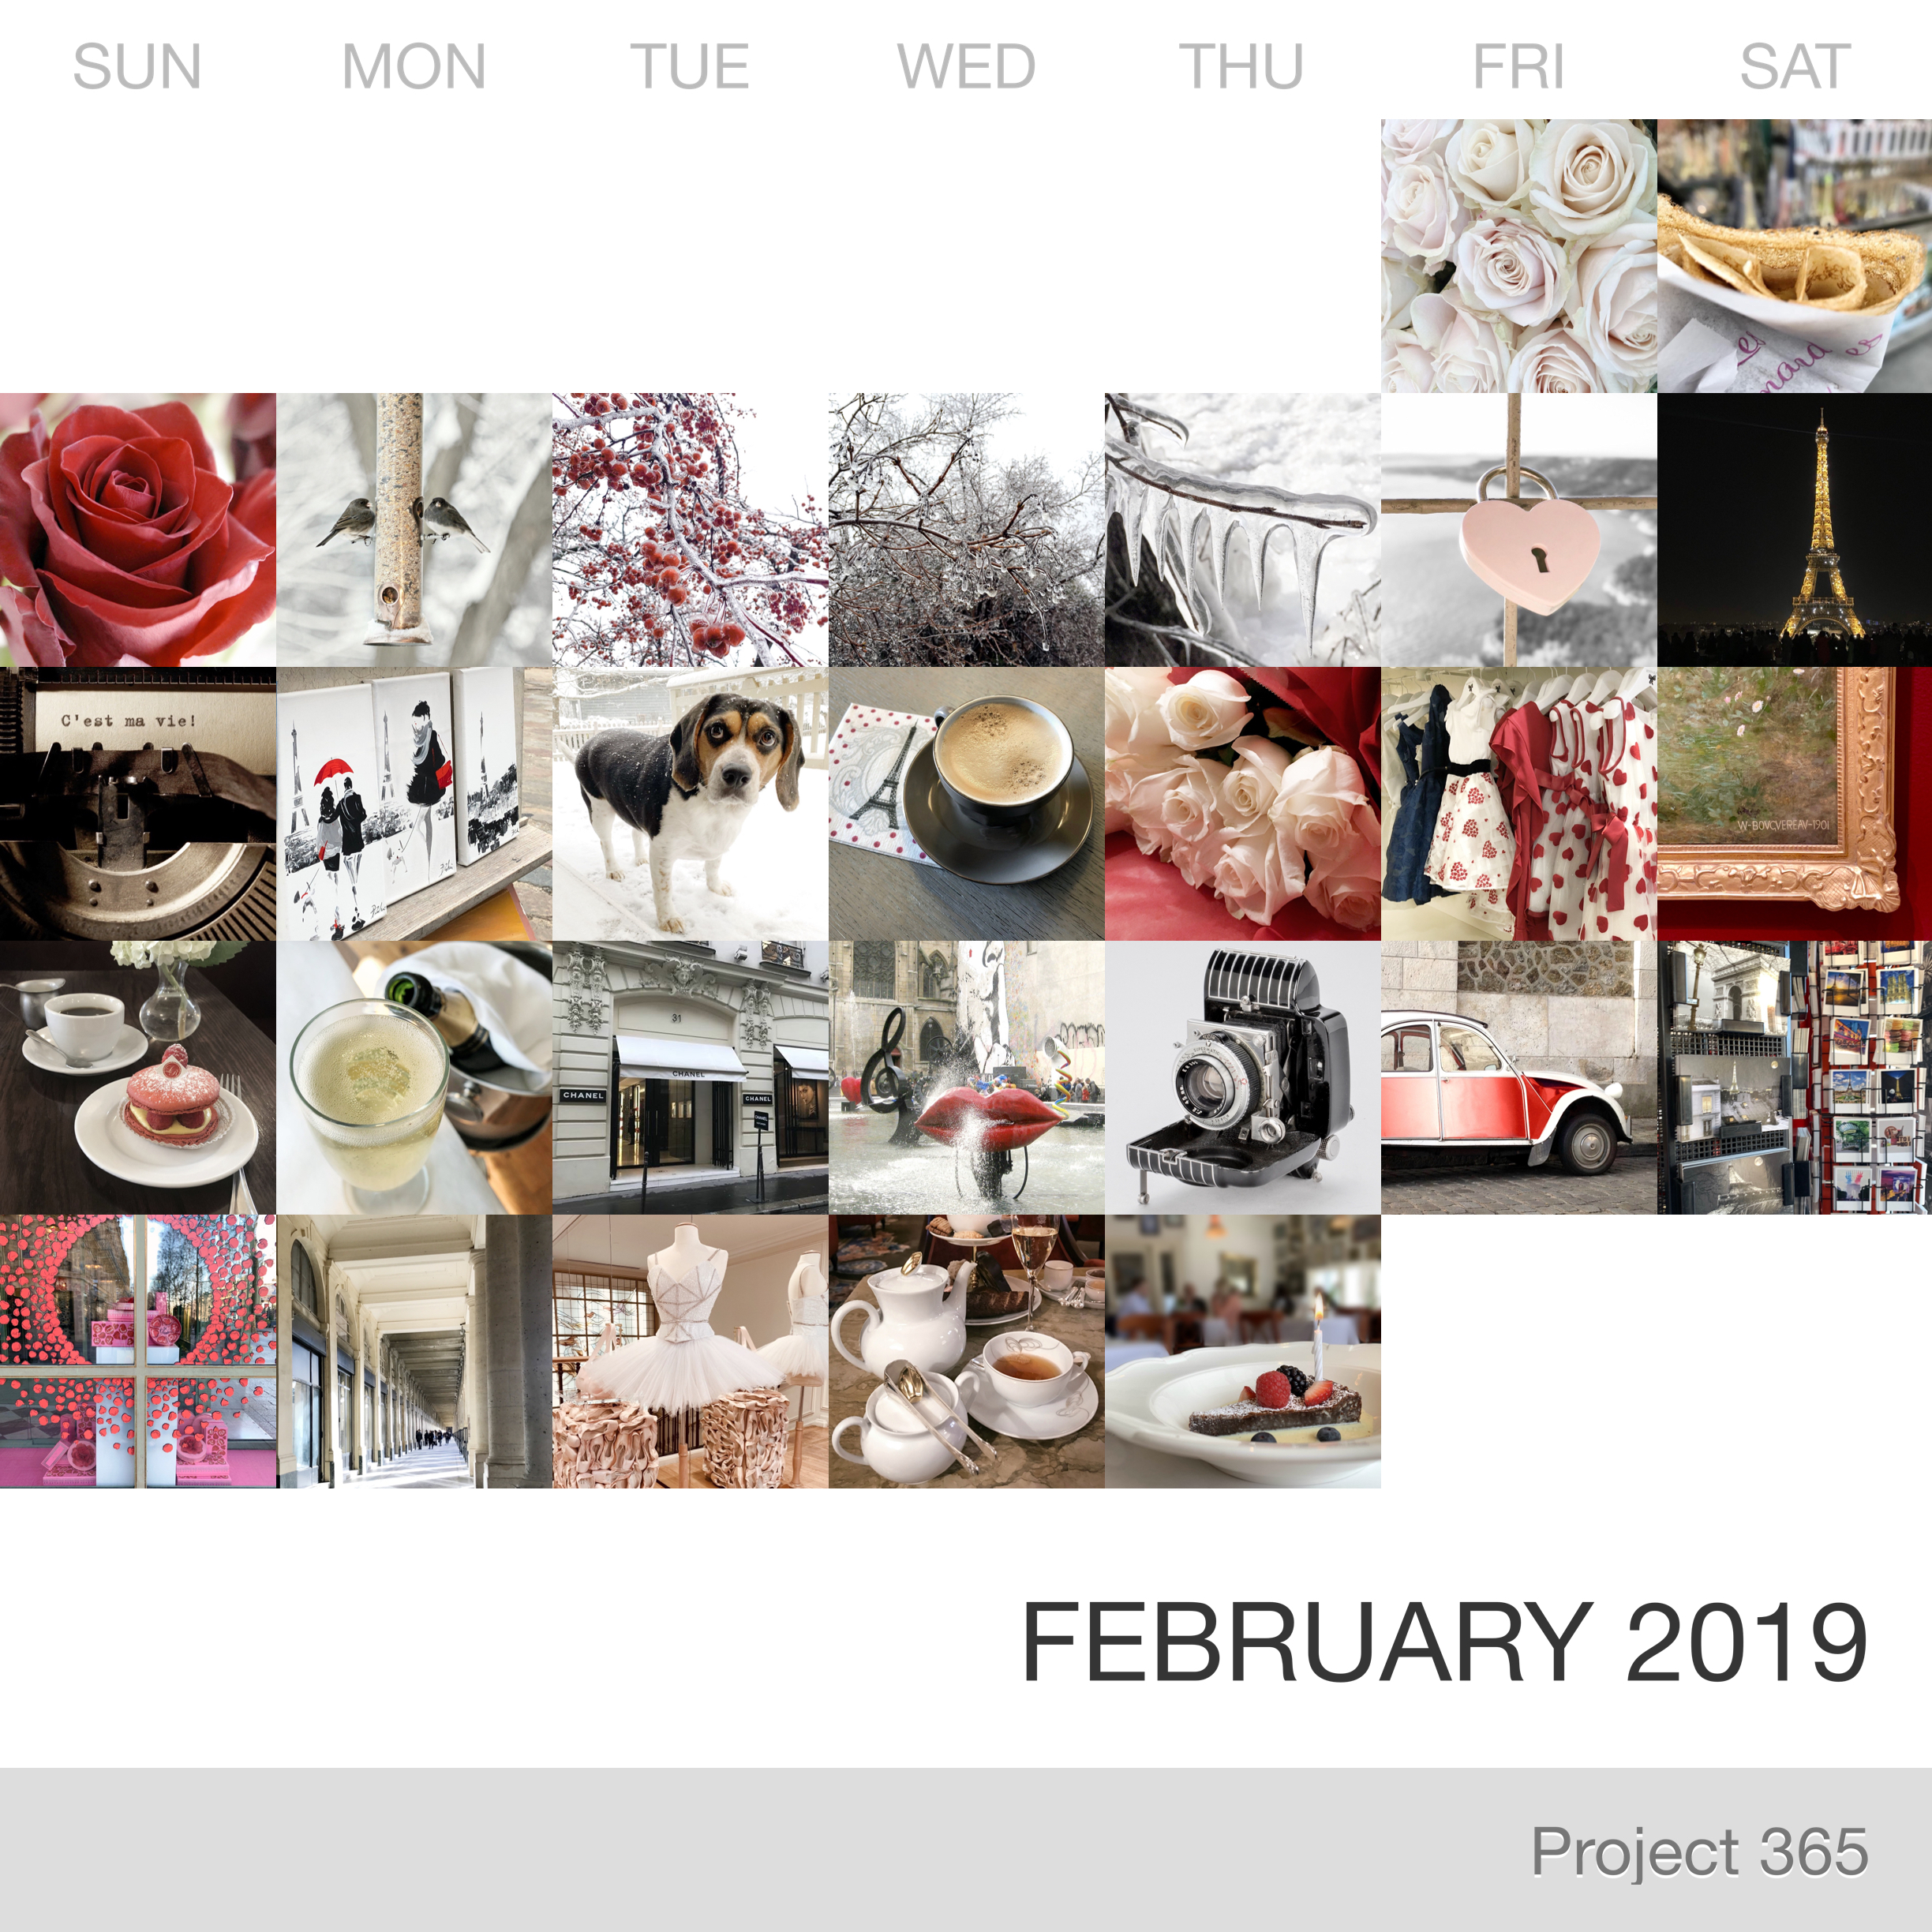 Project 365 _February-2019_Collage 2.jpg